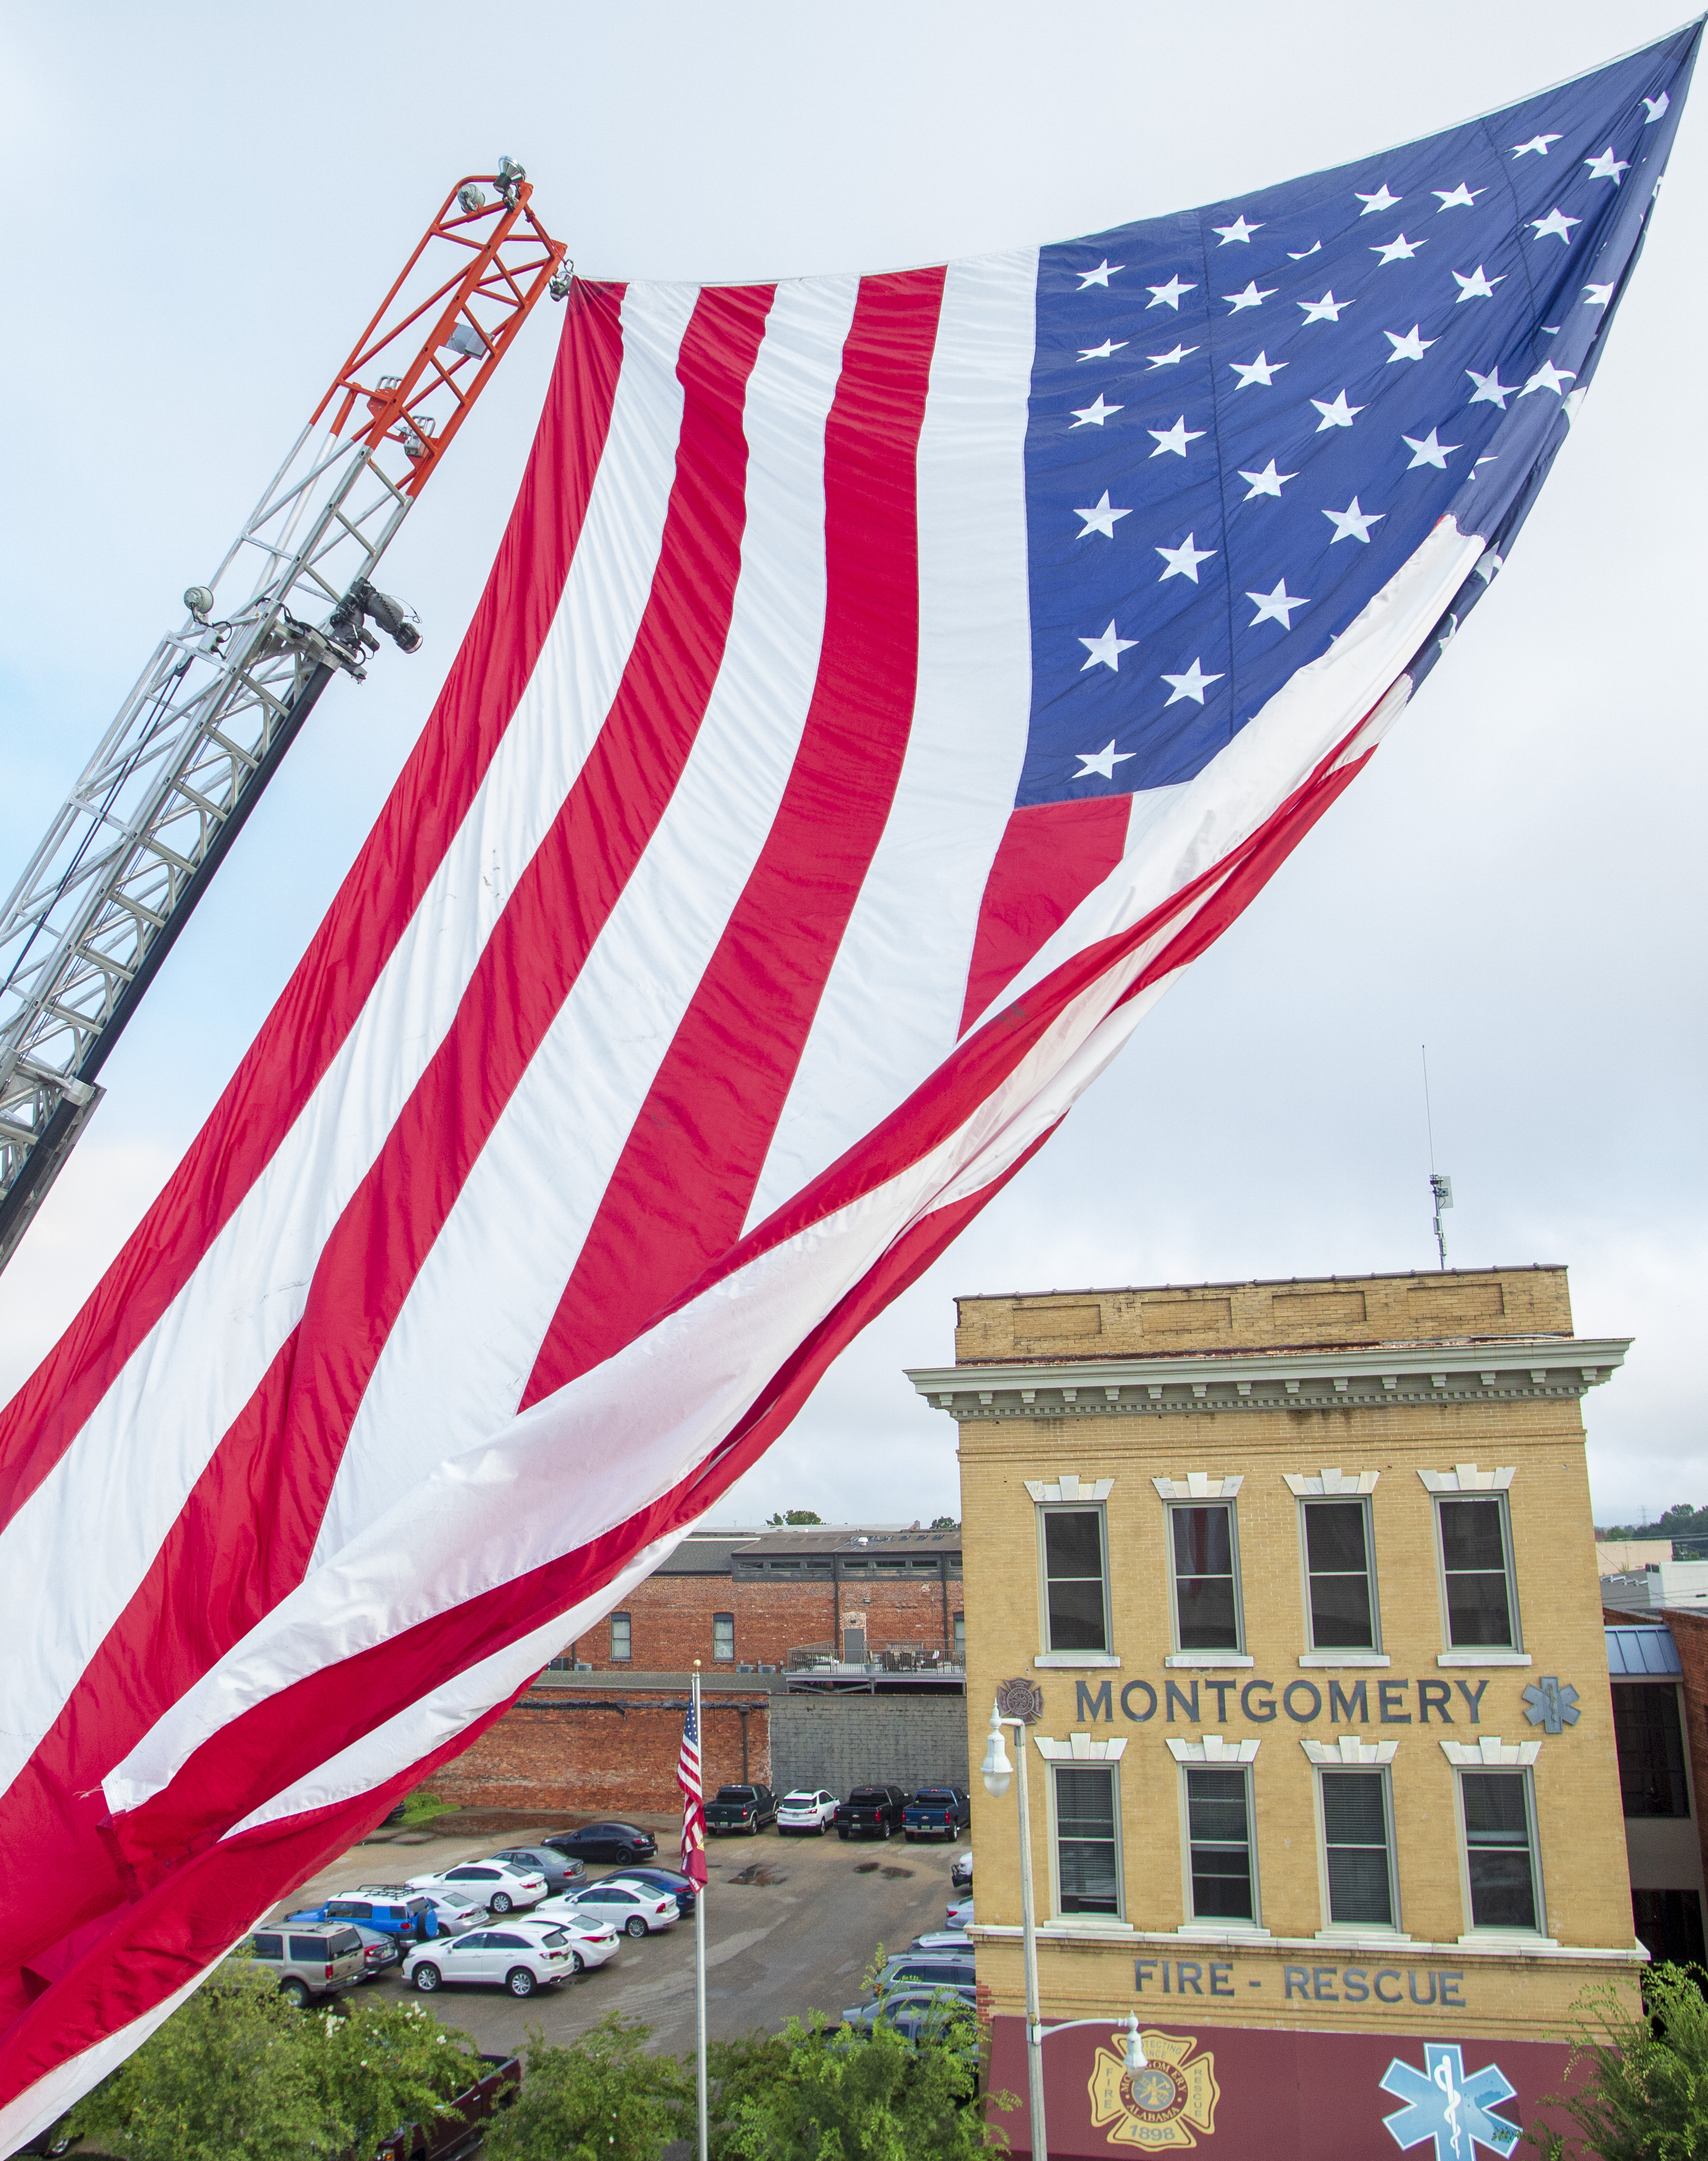 17th annual September 11 remembrance cer